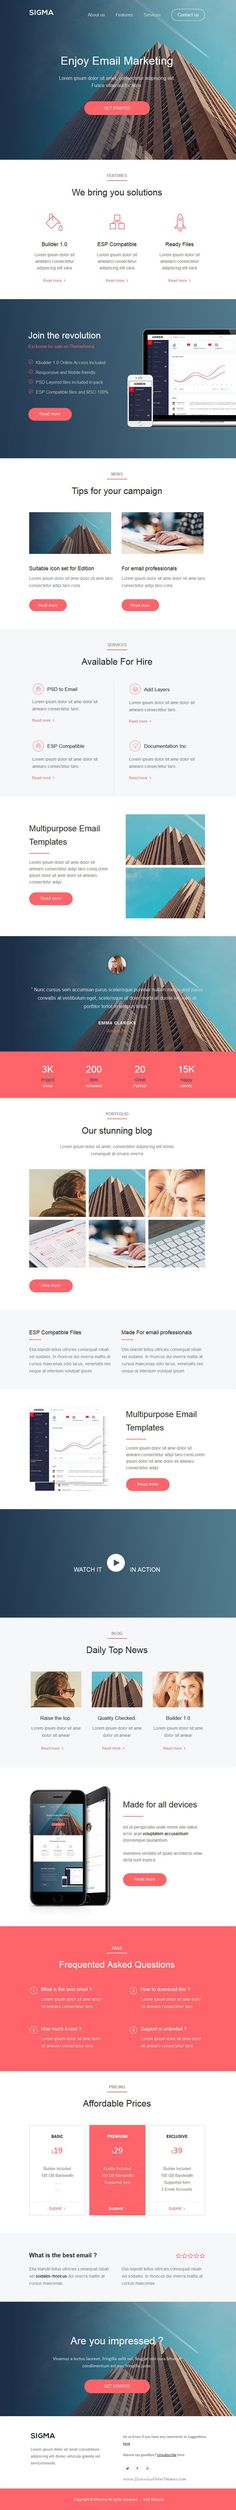 Sigma is multipurpose responsive Email Template + Builder 1.0 #newsletter #emailtemplate #marketing Download Now!